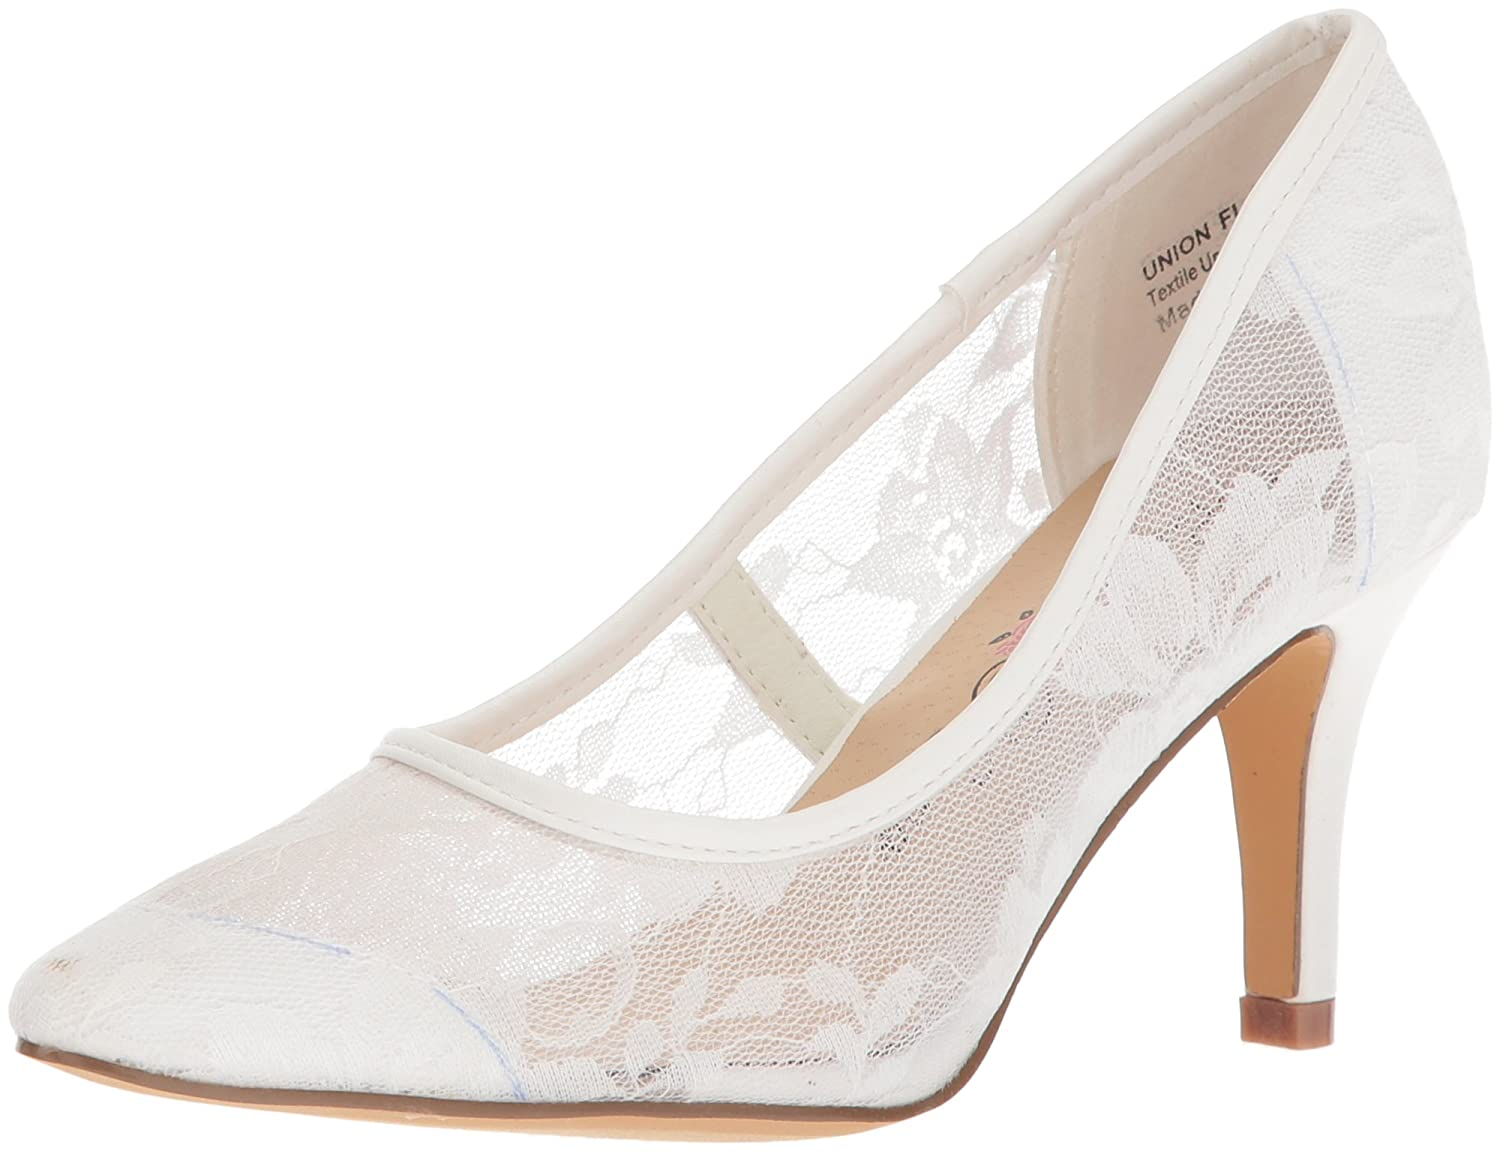 Penny Loves Kenny Women's Union Fl Pump B076FJZN1T 7.5 W US|White Lace